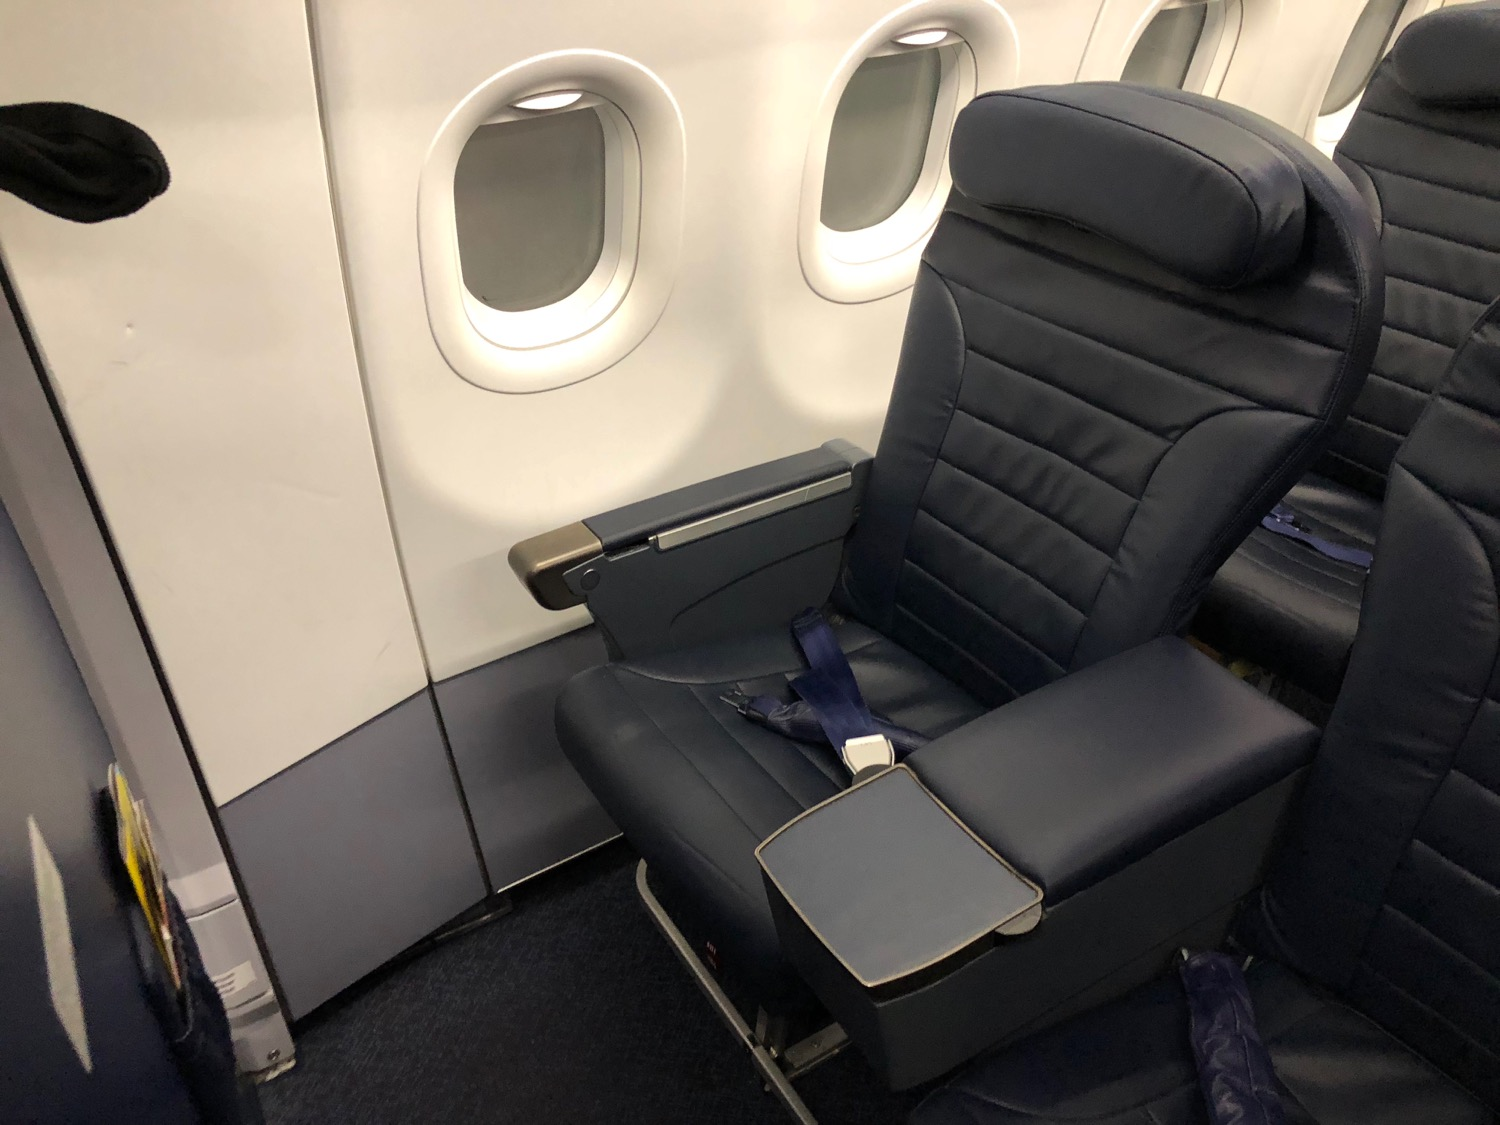 How To Get Spirit Airlines Business Class Ticket